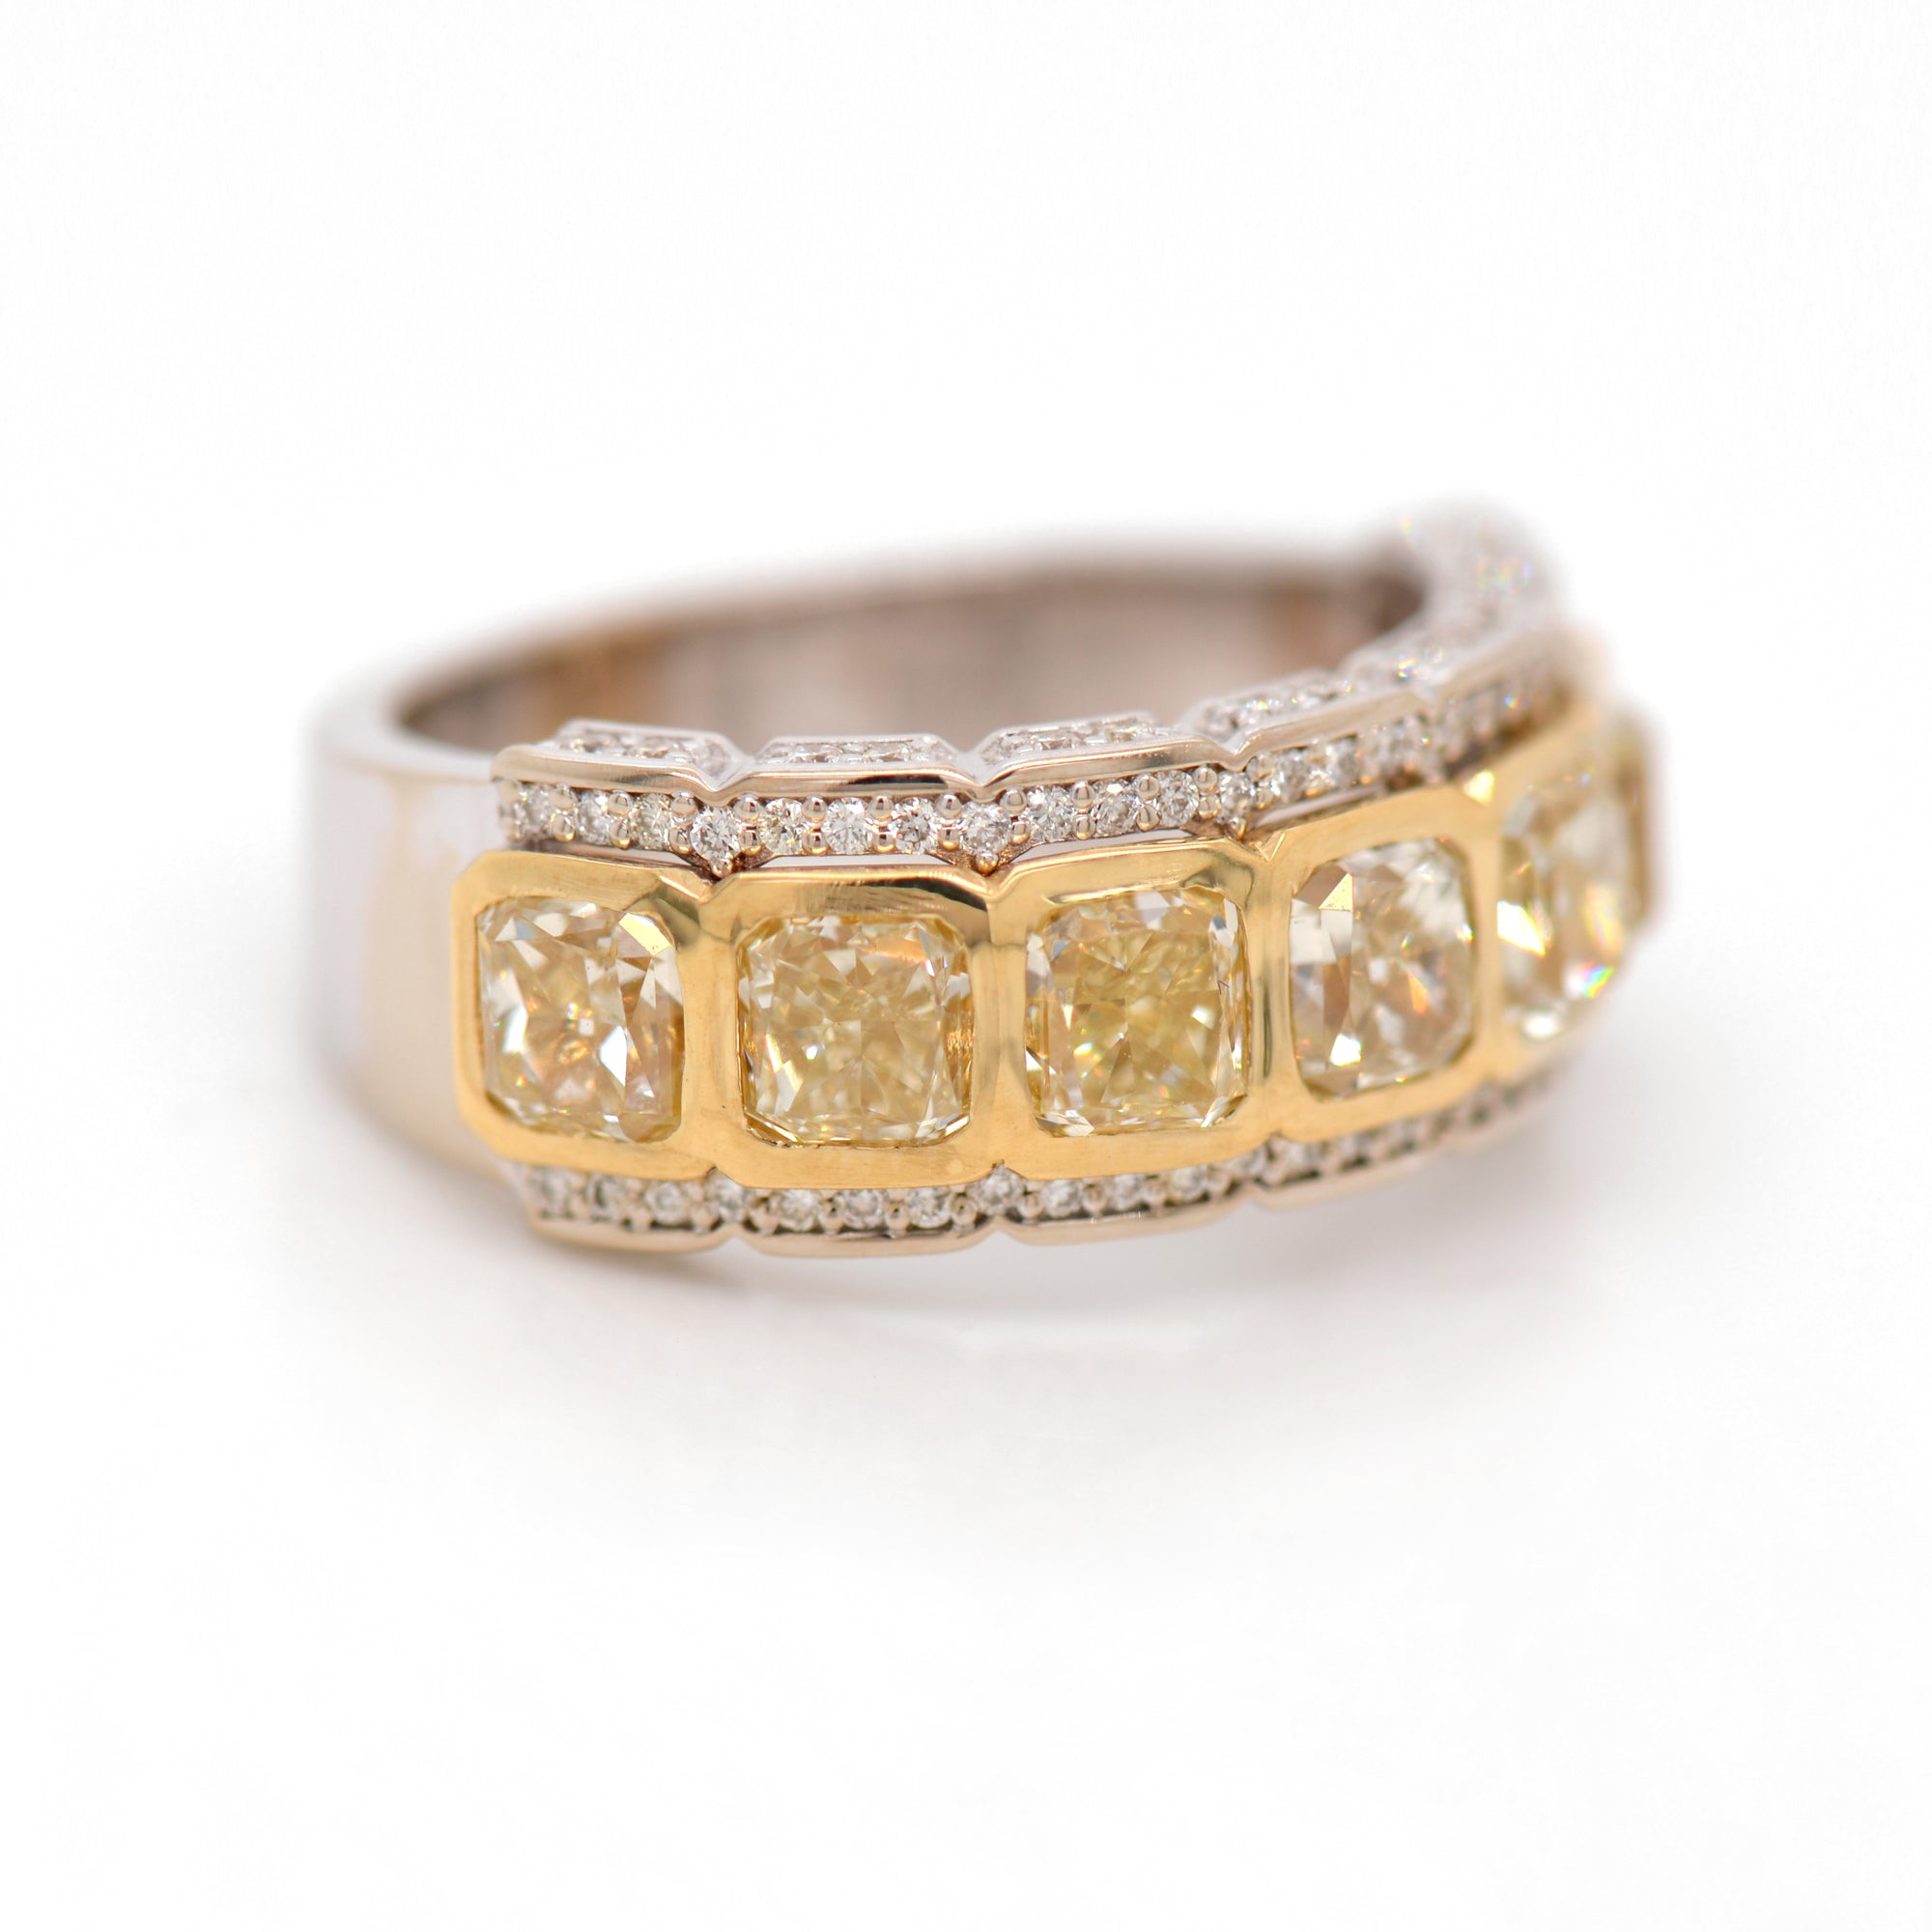 18K 7-Stone Radiant Yellow Diamond Ring